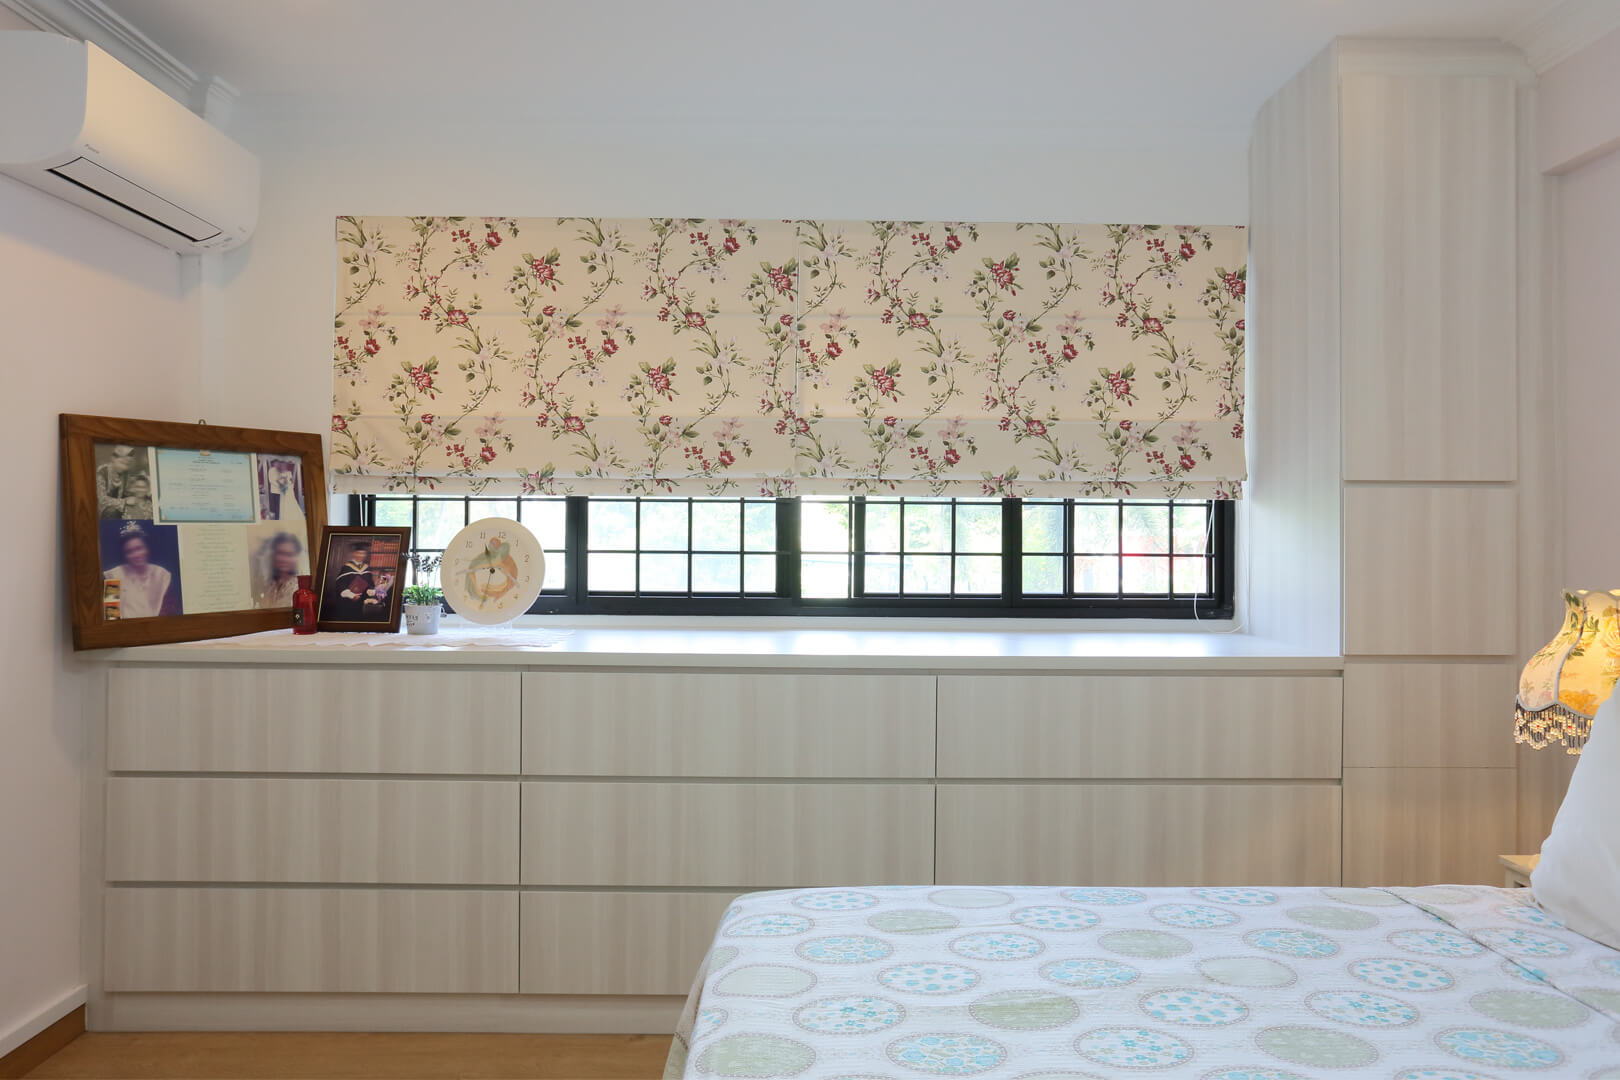 Country Chic Ambiance Interior Design room Bedroom Window With Curtains